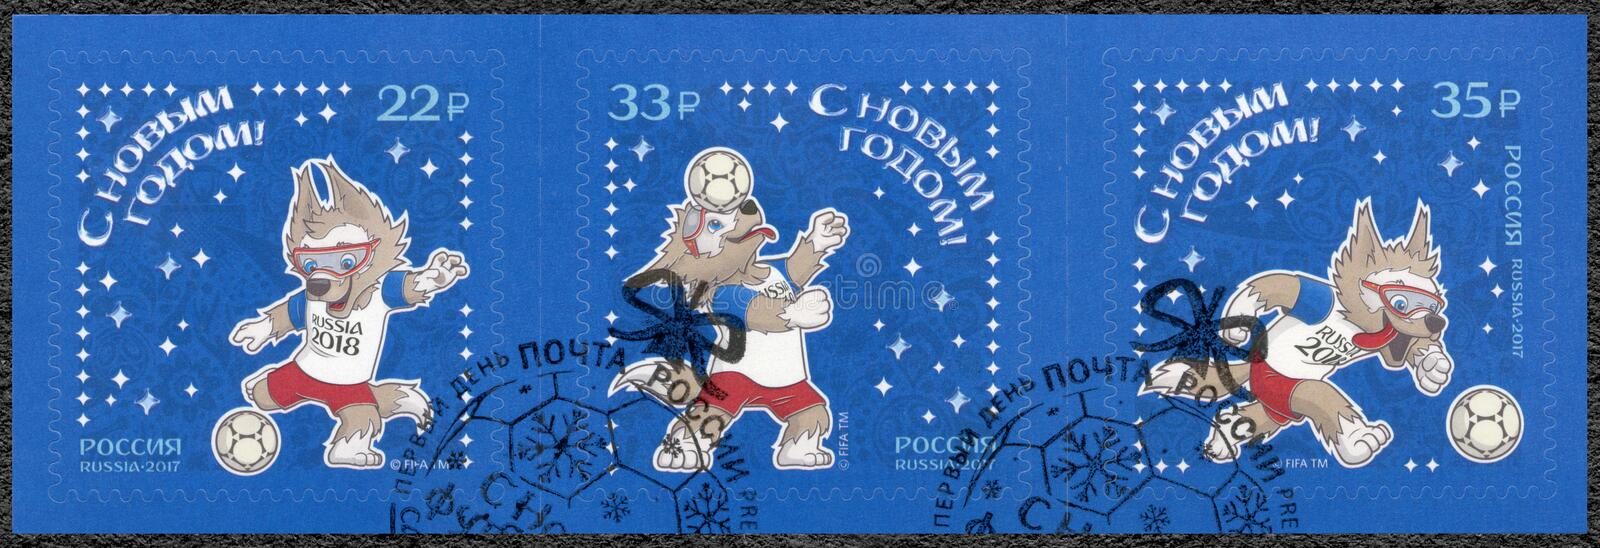 RUSSIA - 2017: shows Mascot Wolf, 2018 Football World Cup Russia, Happy New Year, 2017 royalty free stock image